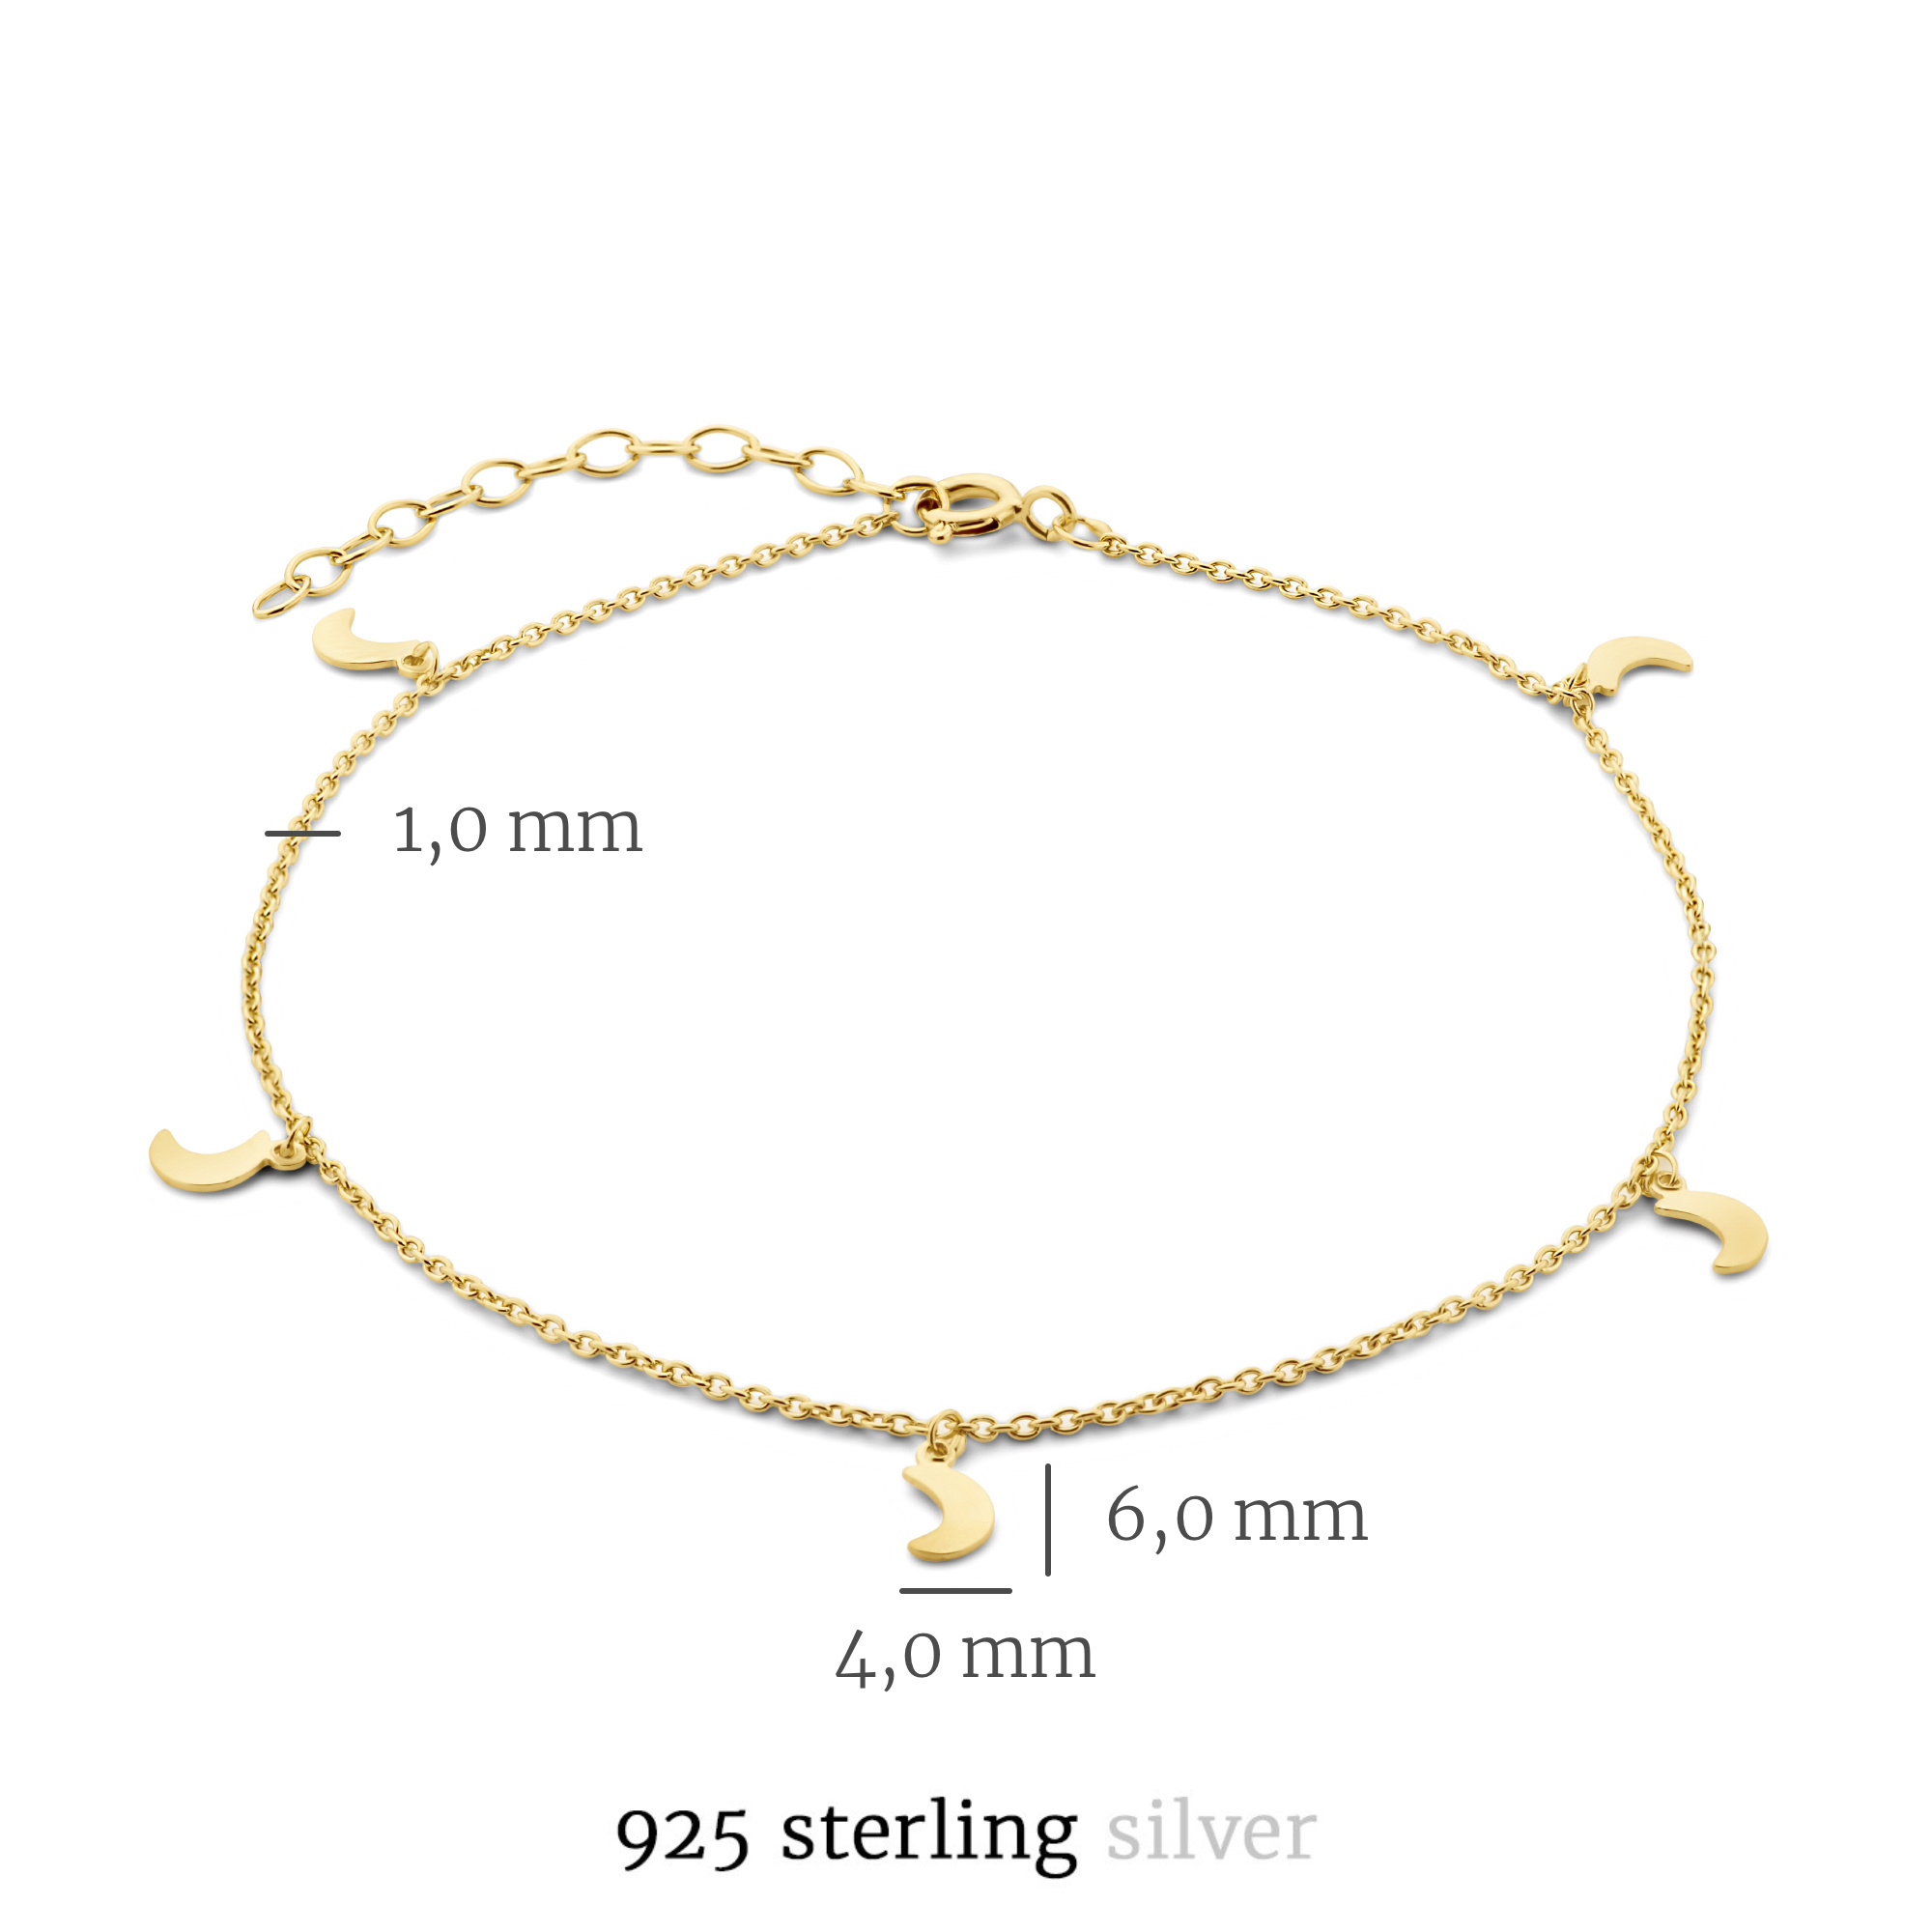 Selected Jewels Julie Louna cavigliera color oro in argento sterling 925